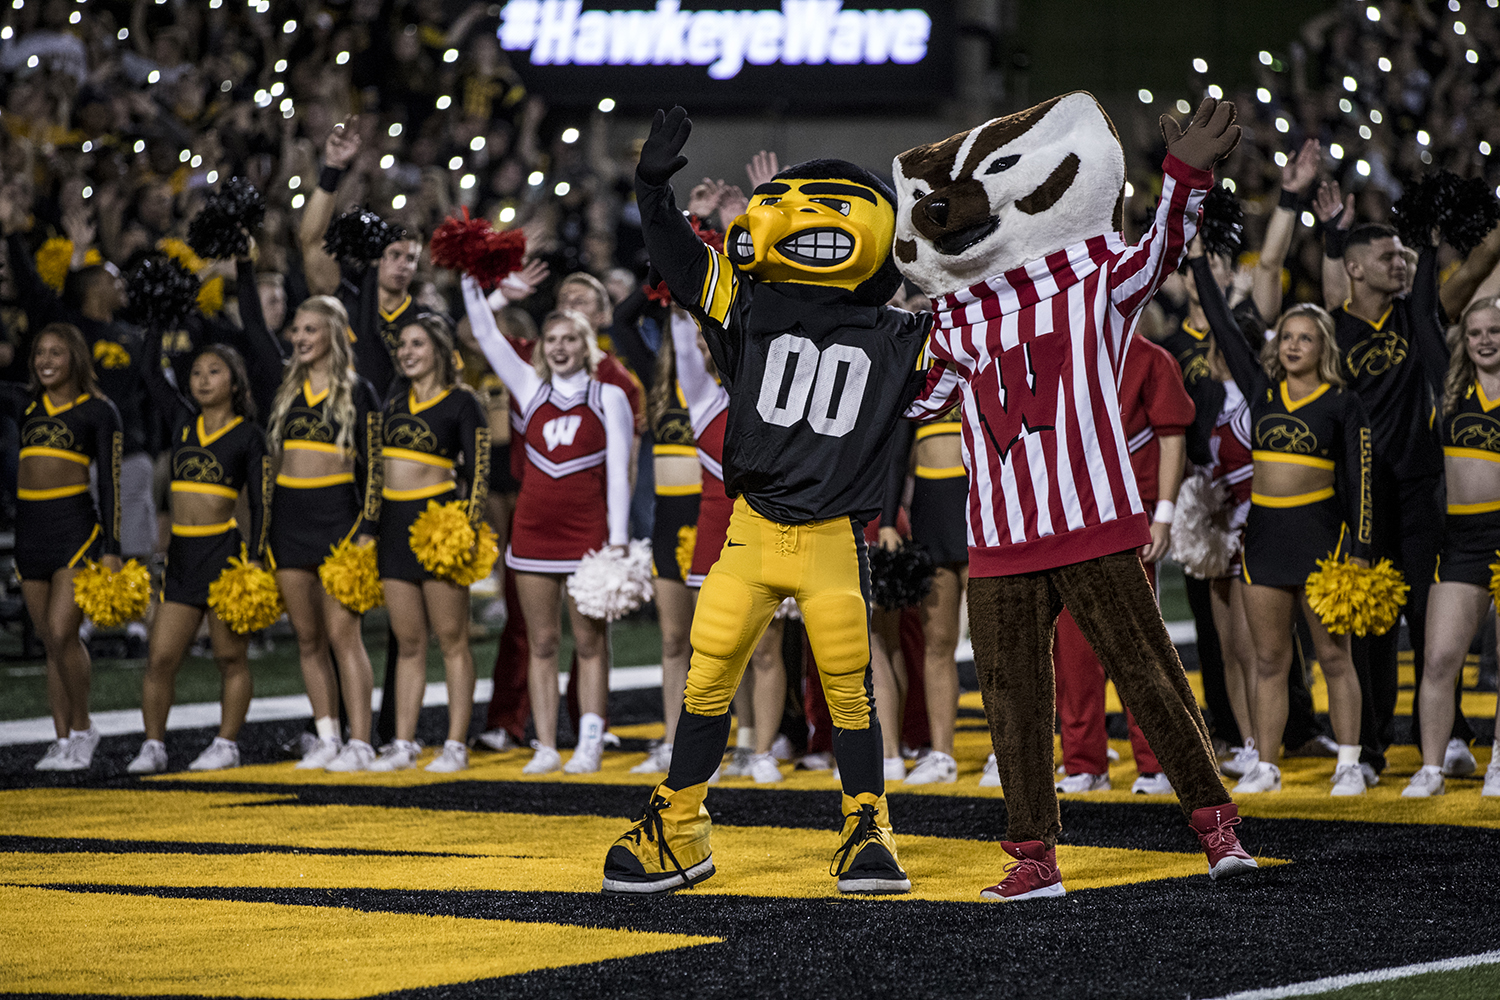 Herky the Hawk and Bucky the Badger wave to the Children's Hospital during Iowa's game against Wisconsin at Kinnick Stadium on Saturday, September 22, 2018. The Badgers defeated the Hawkeyes 28-17.